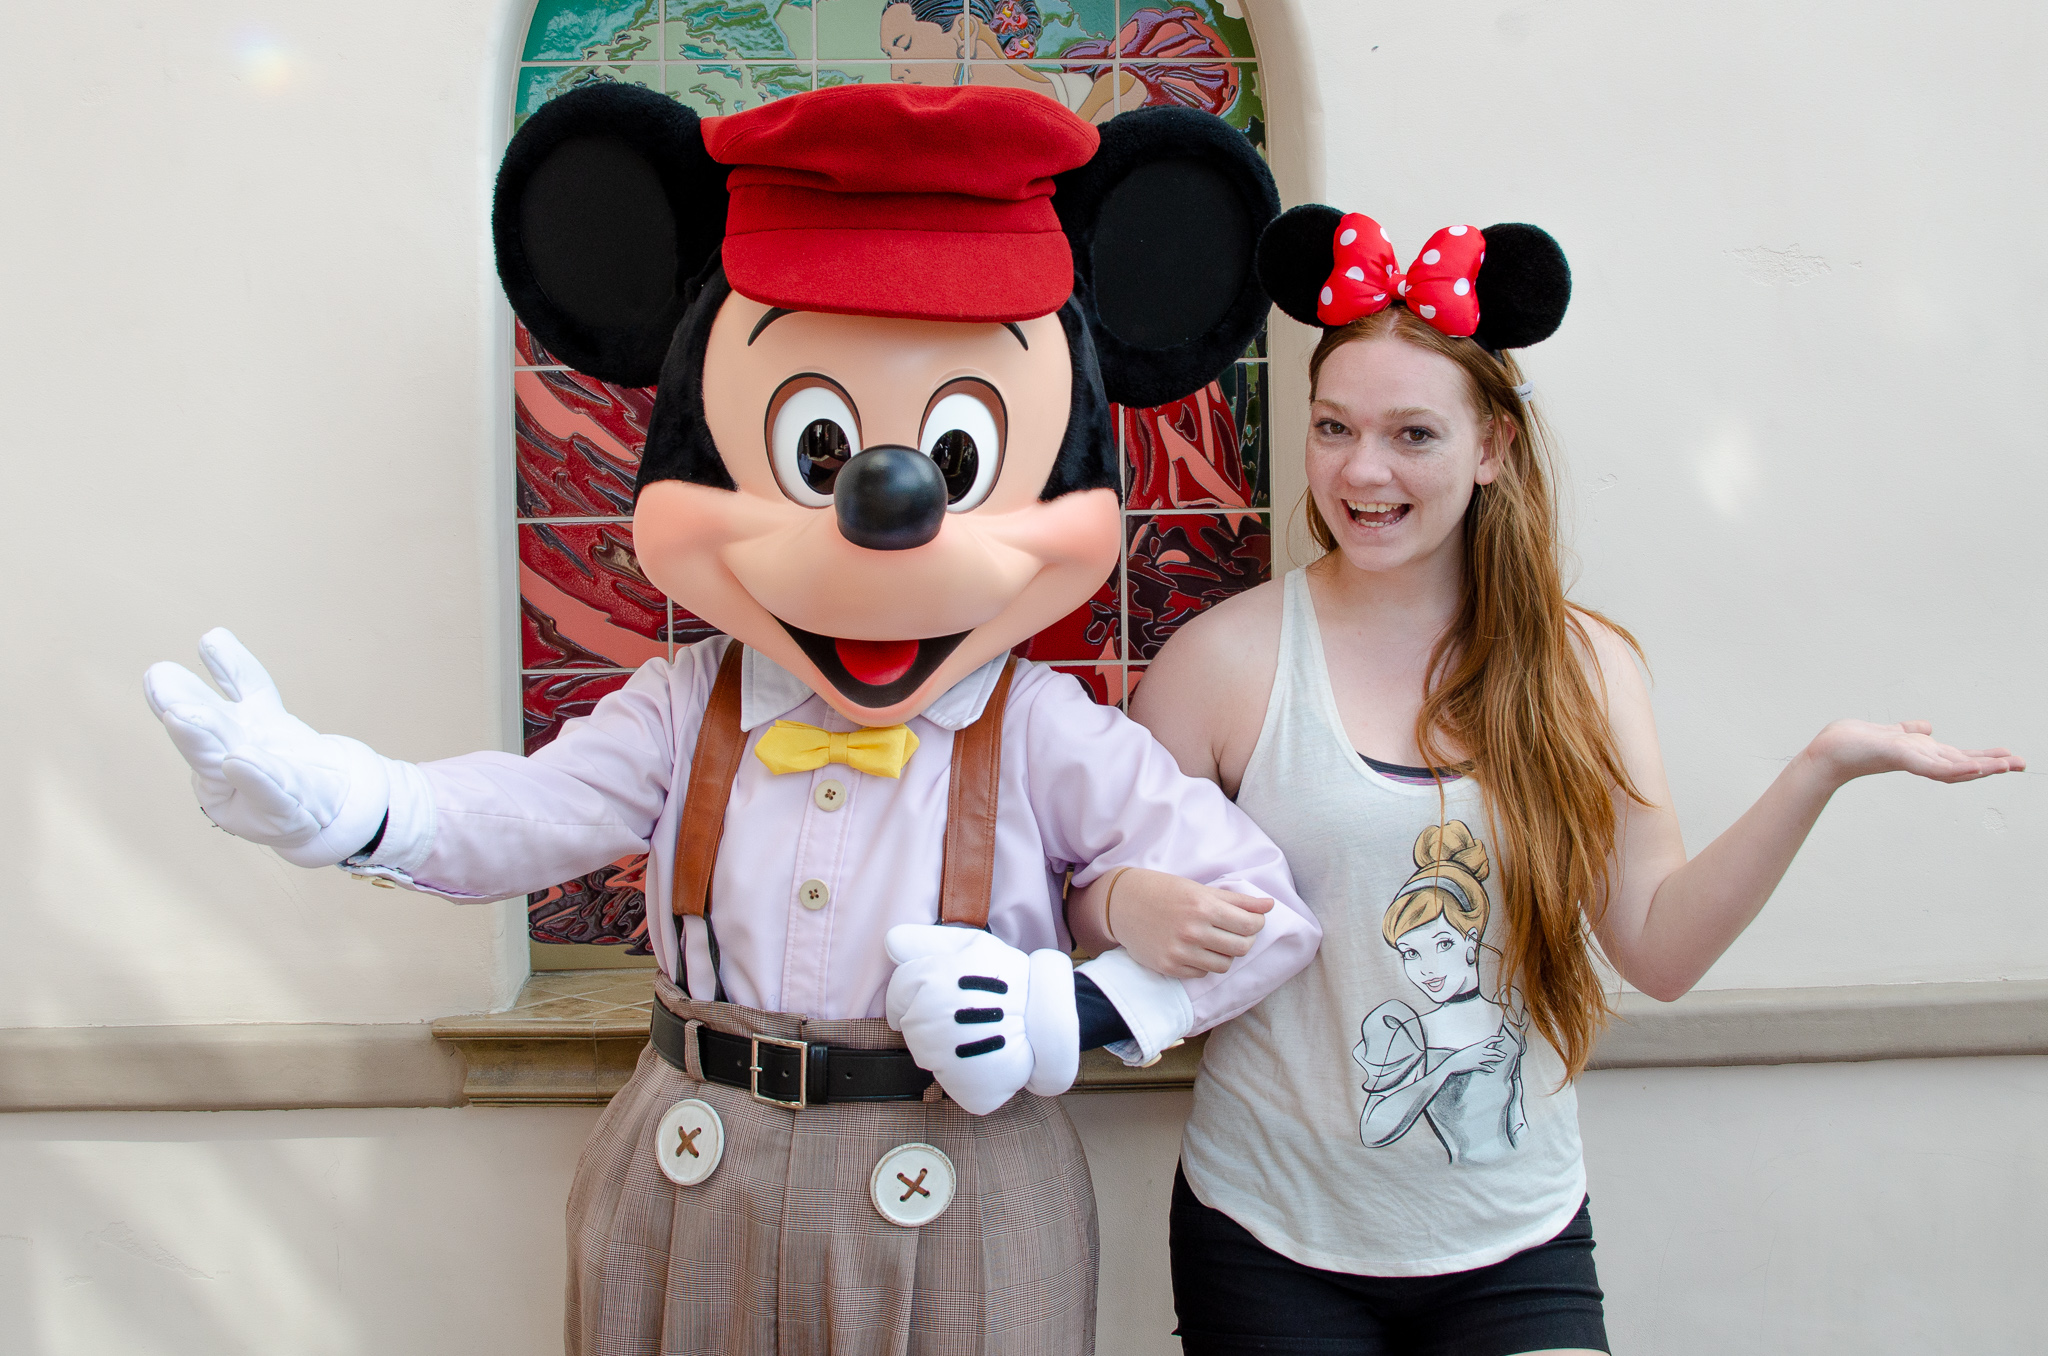 Mickey dressed up in red hat, white shirt and beige suspenders, standing beside woman in red Miinnie ears